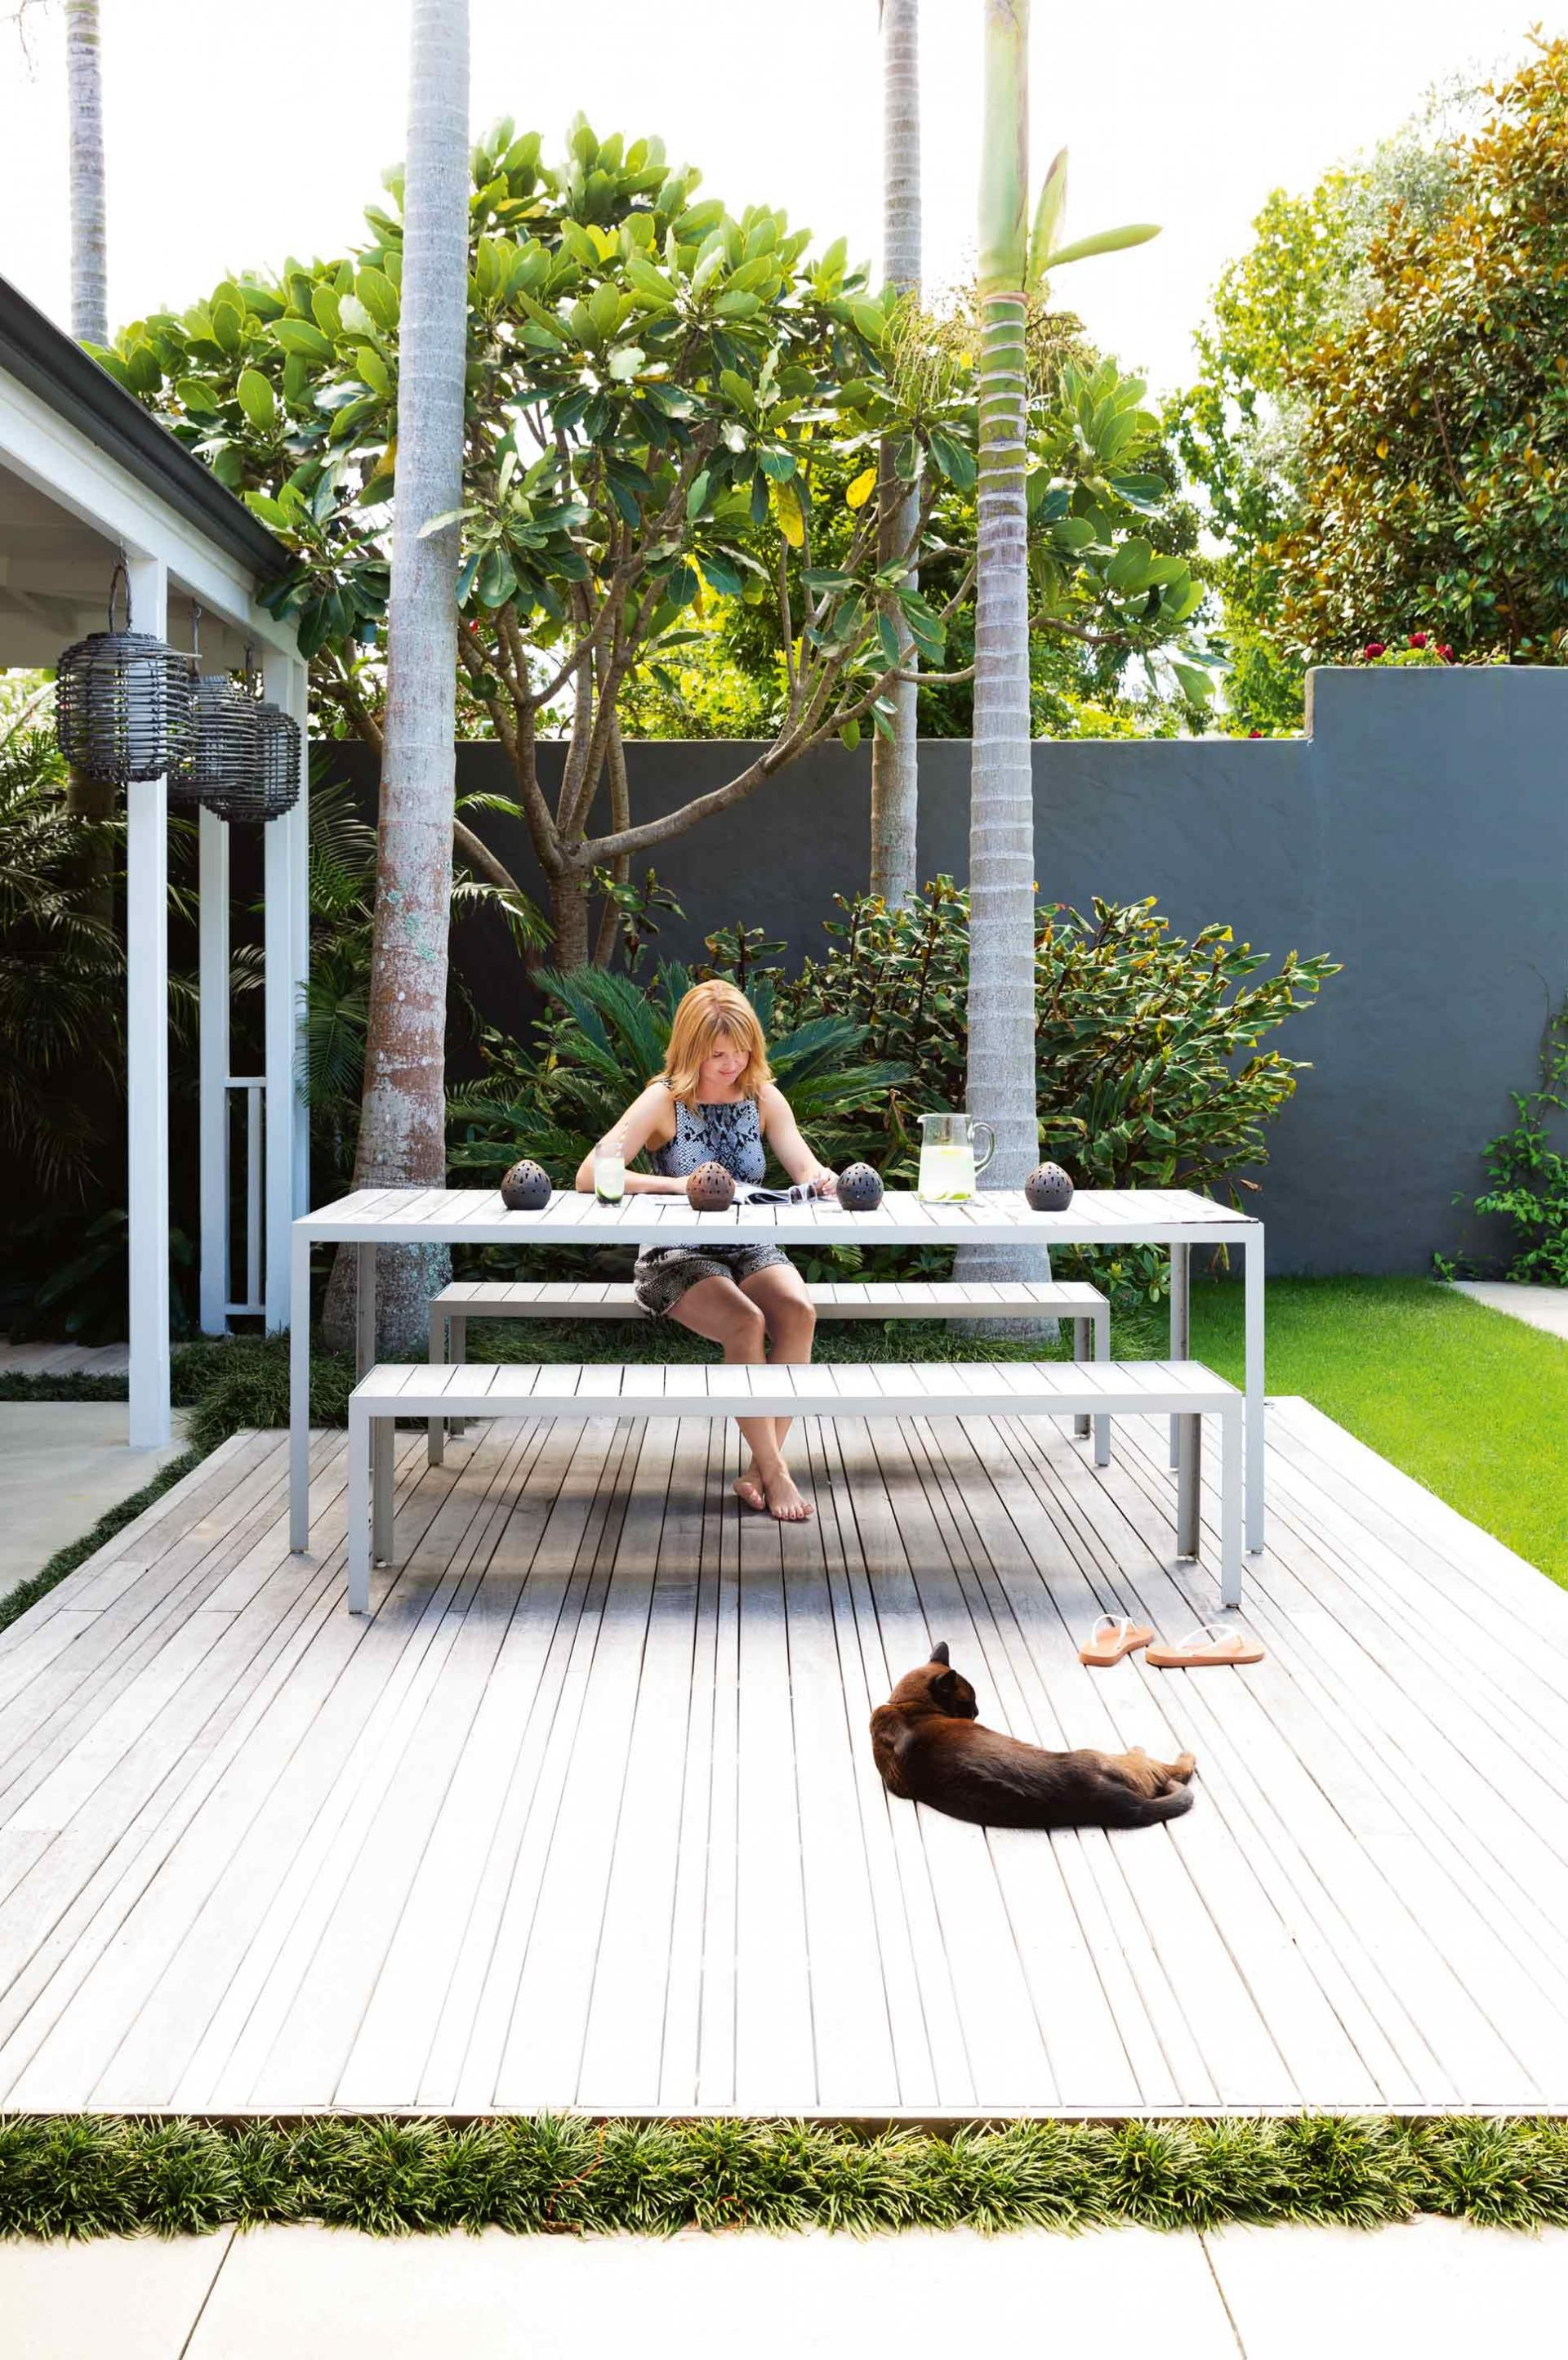 outdoor deck wood decking palm trees outdoor setting